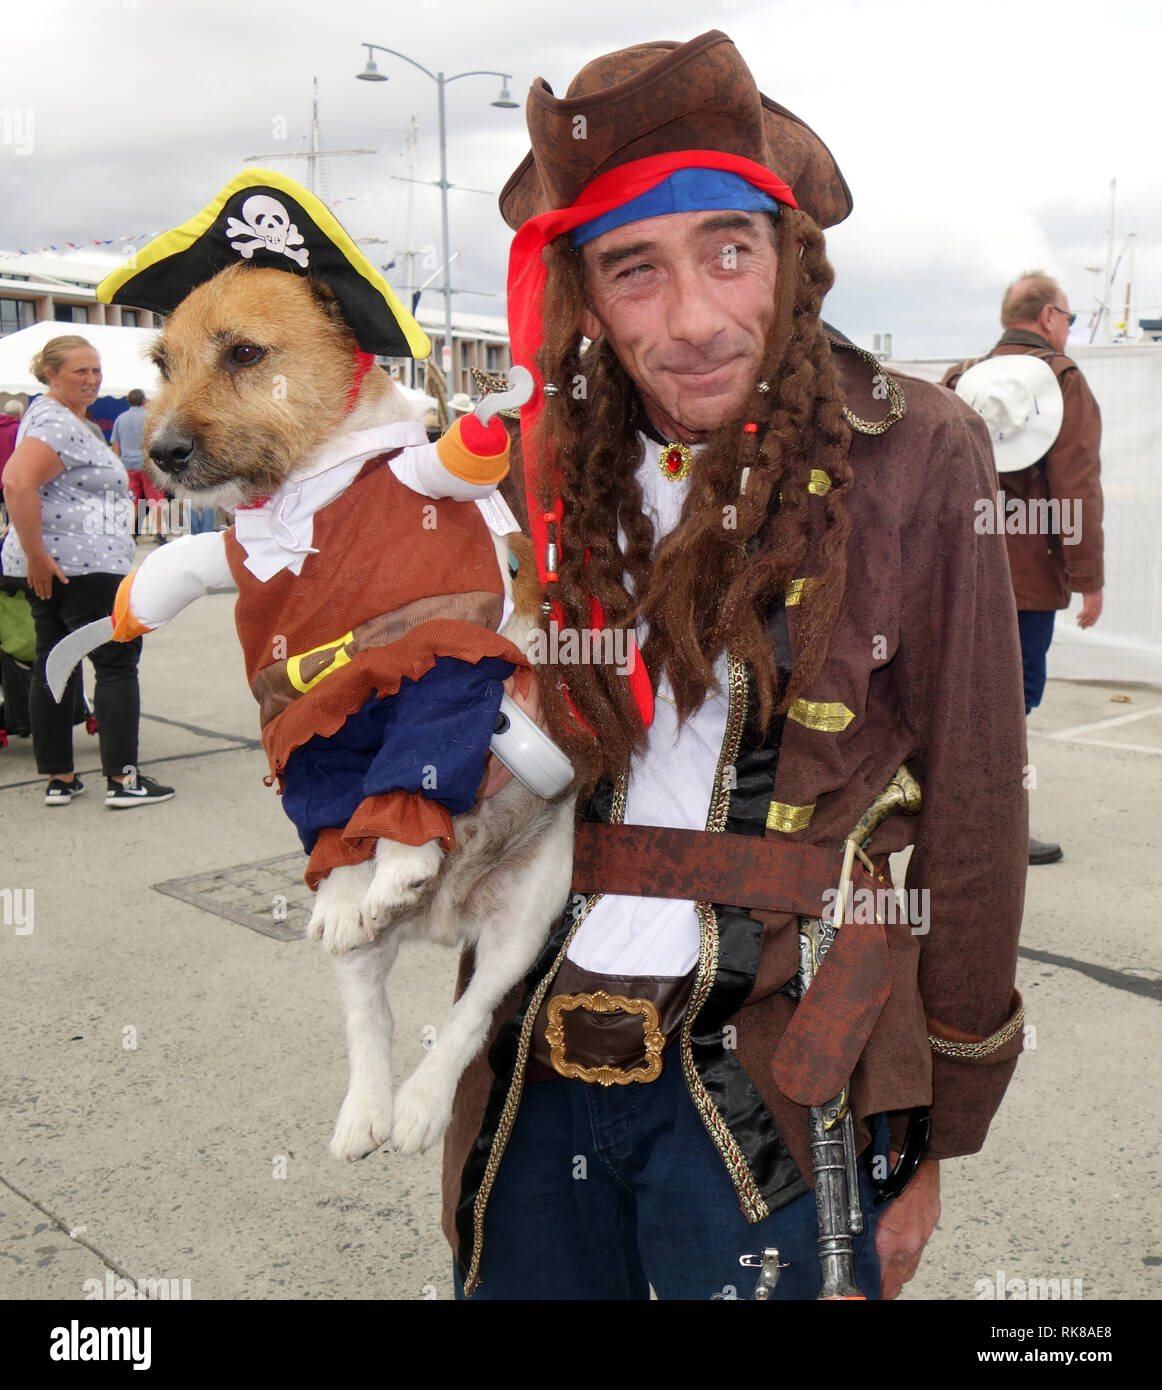 Pirate with his dog who is also in pirate costume, Australian Wooden Boat Festival 2019, Hobart, Tasmania, Australia. No MR Stock Photo